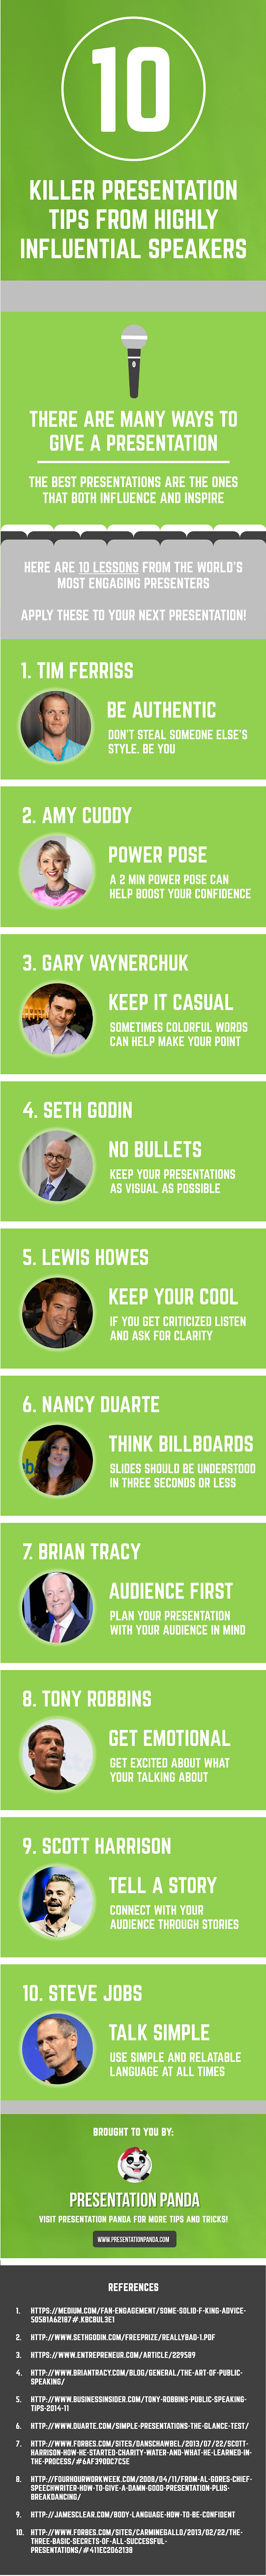 10 Killer PresentationTips From Highly Influential People (Nancy Duarte, Tim Ferriss, Gary Vaynerchuk, Tony Robbins, Amy Cuddy, Lewis Howes, Seth Godin, Steve Jobs, Brian Tracy, Scott Harrison)